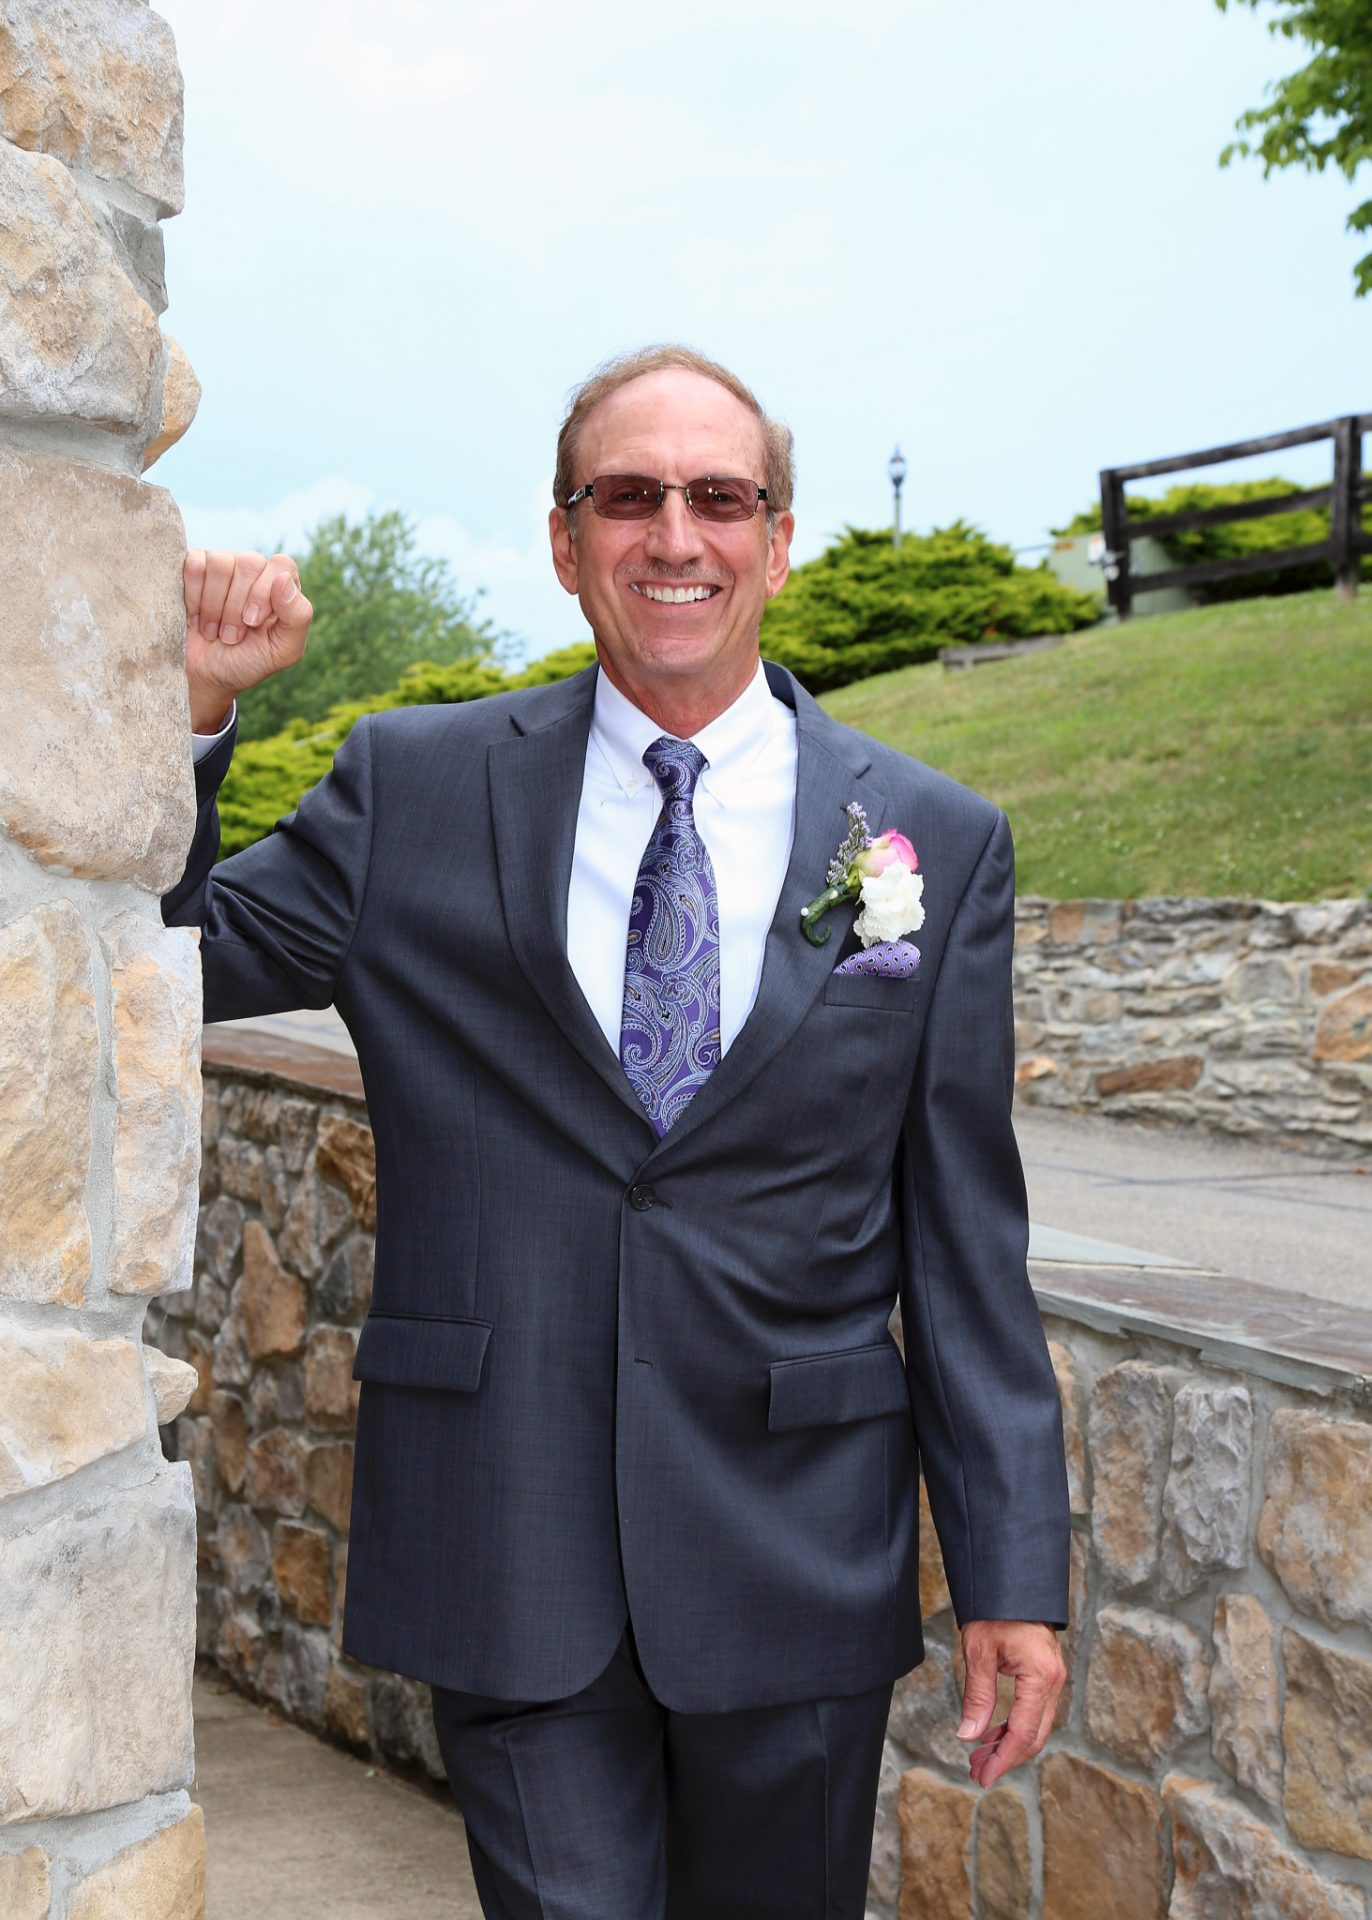 Groom poses by the stone wall in the back of Morningside In before the wedding ceremony on the outdoor pavilion